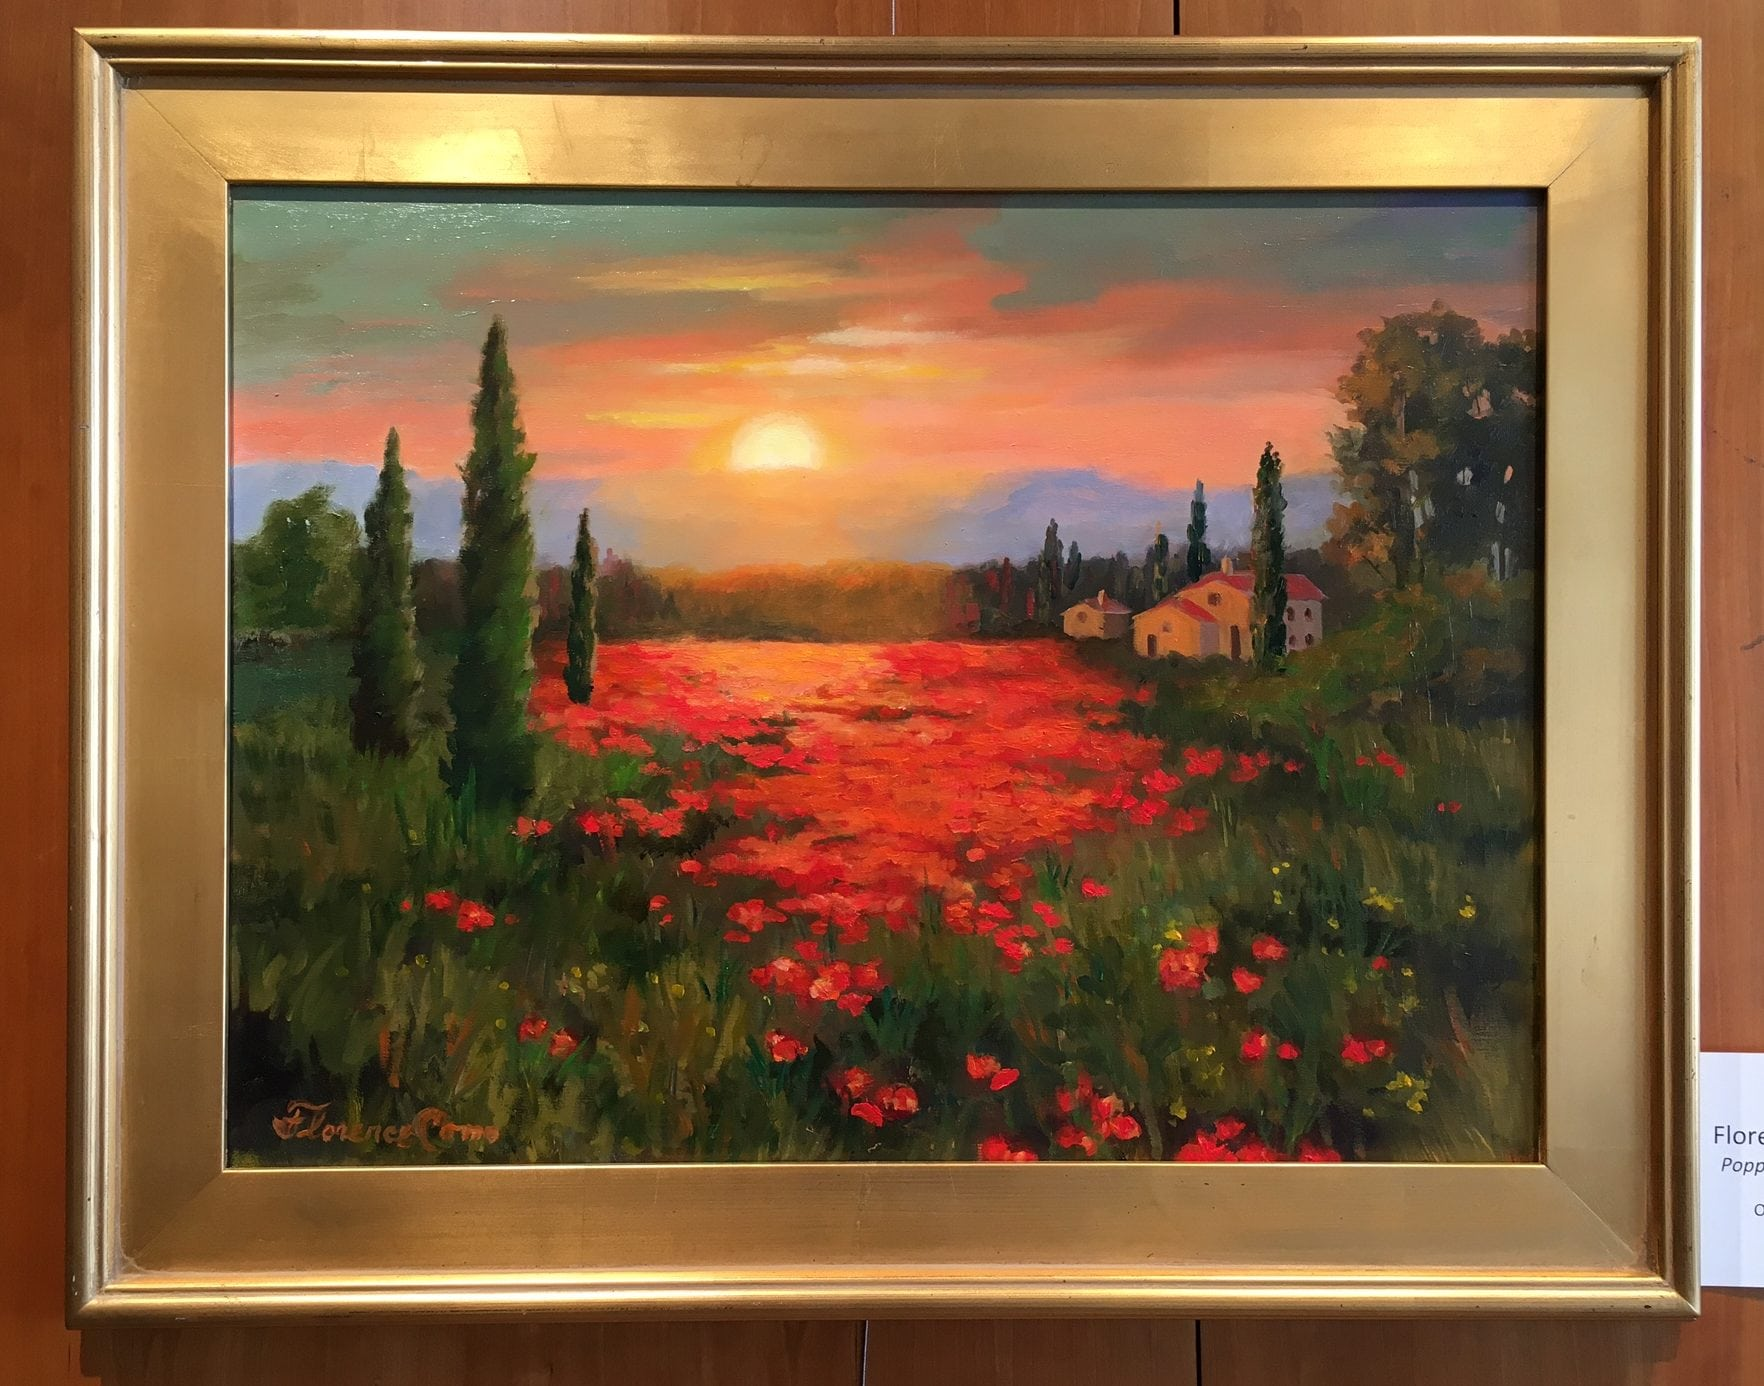 Poppies at Sunset, Florence Como